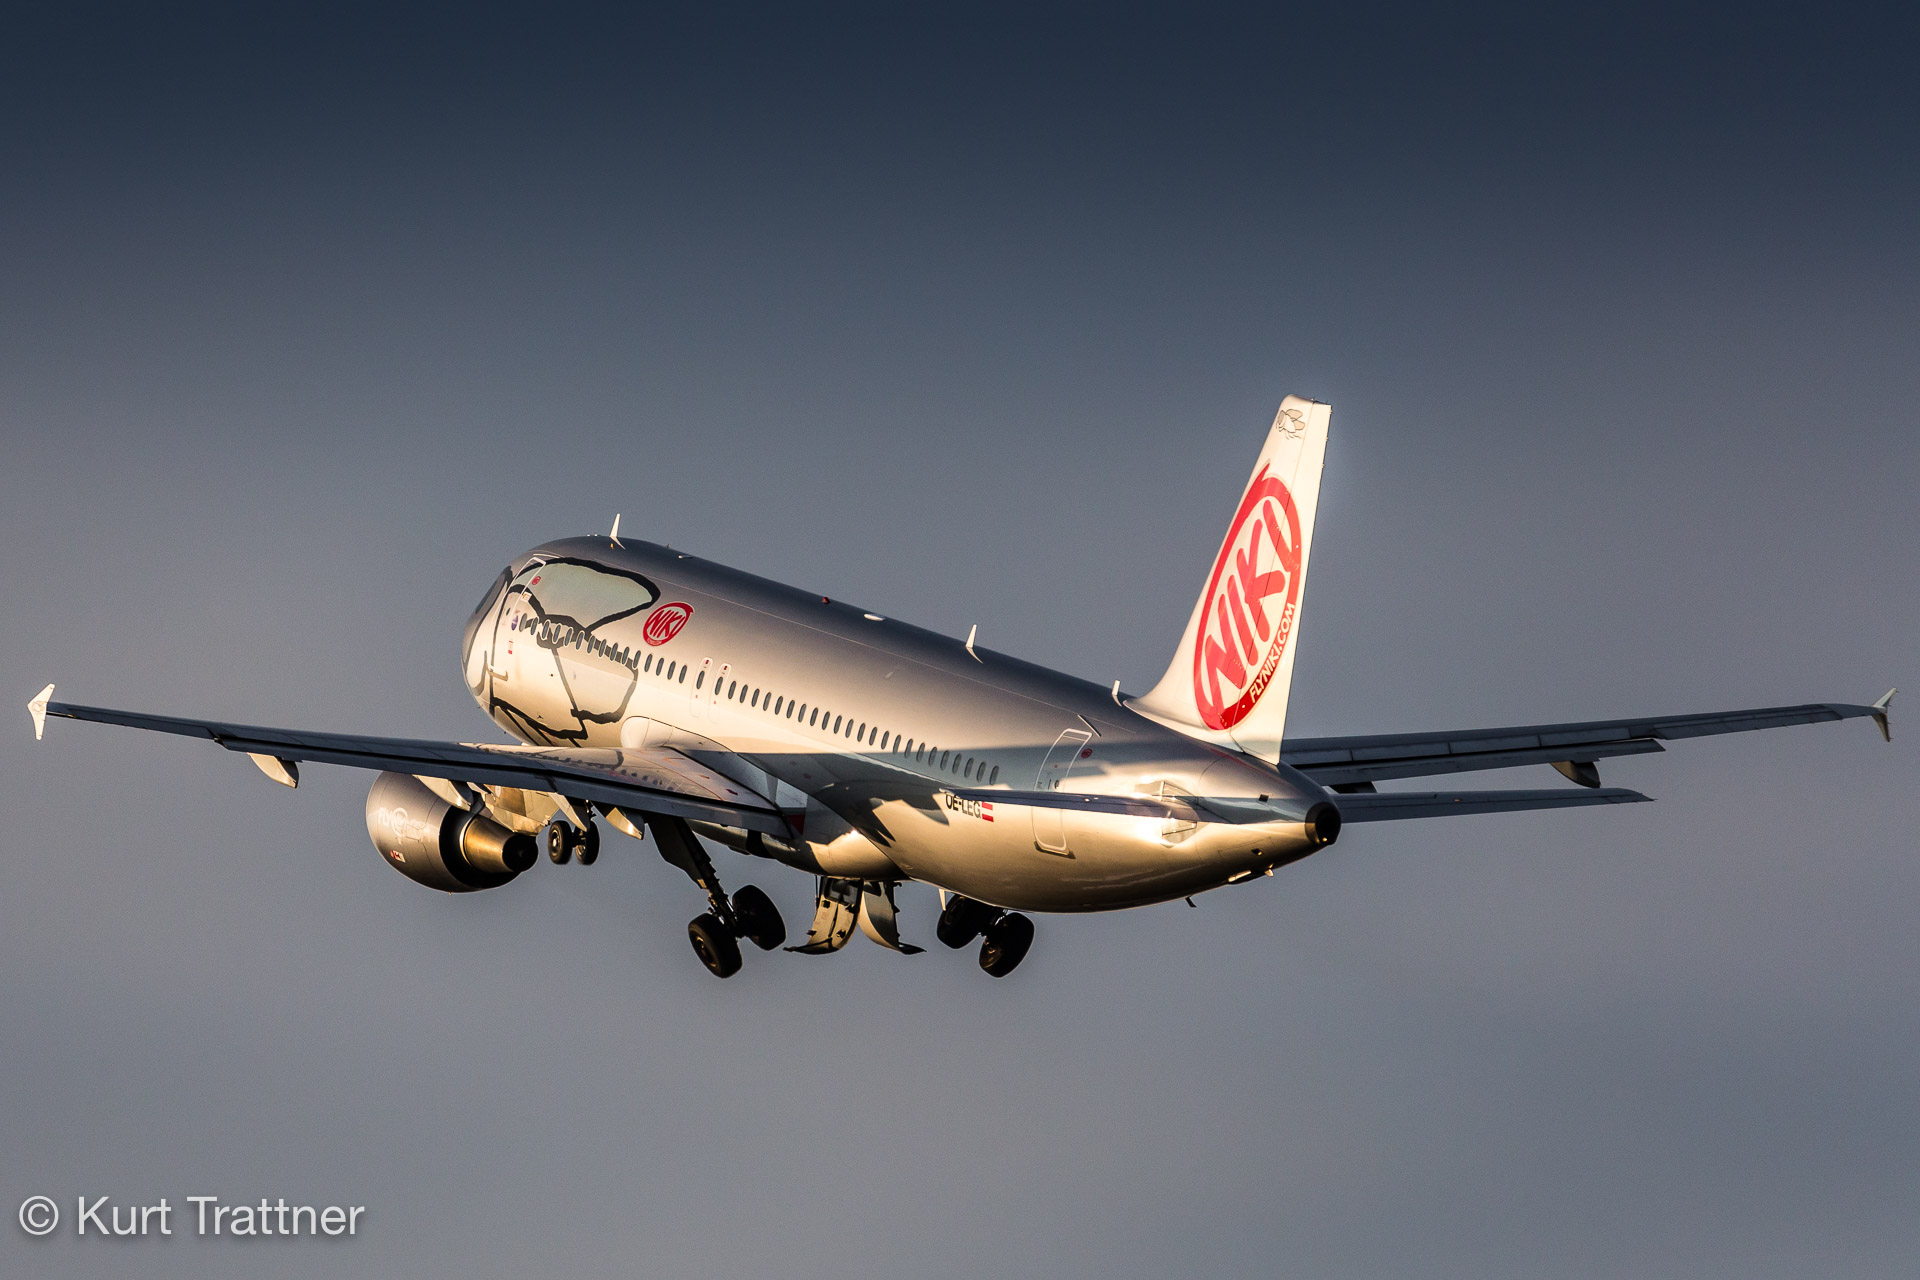 Airbus A320 from Niki departs from Vienna.